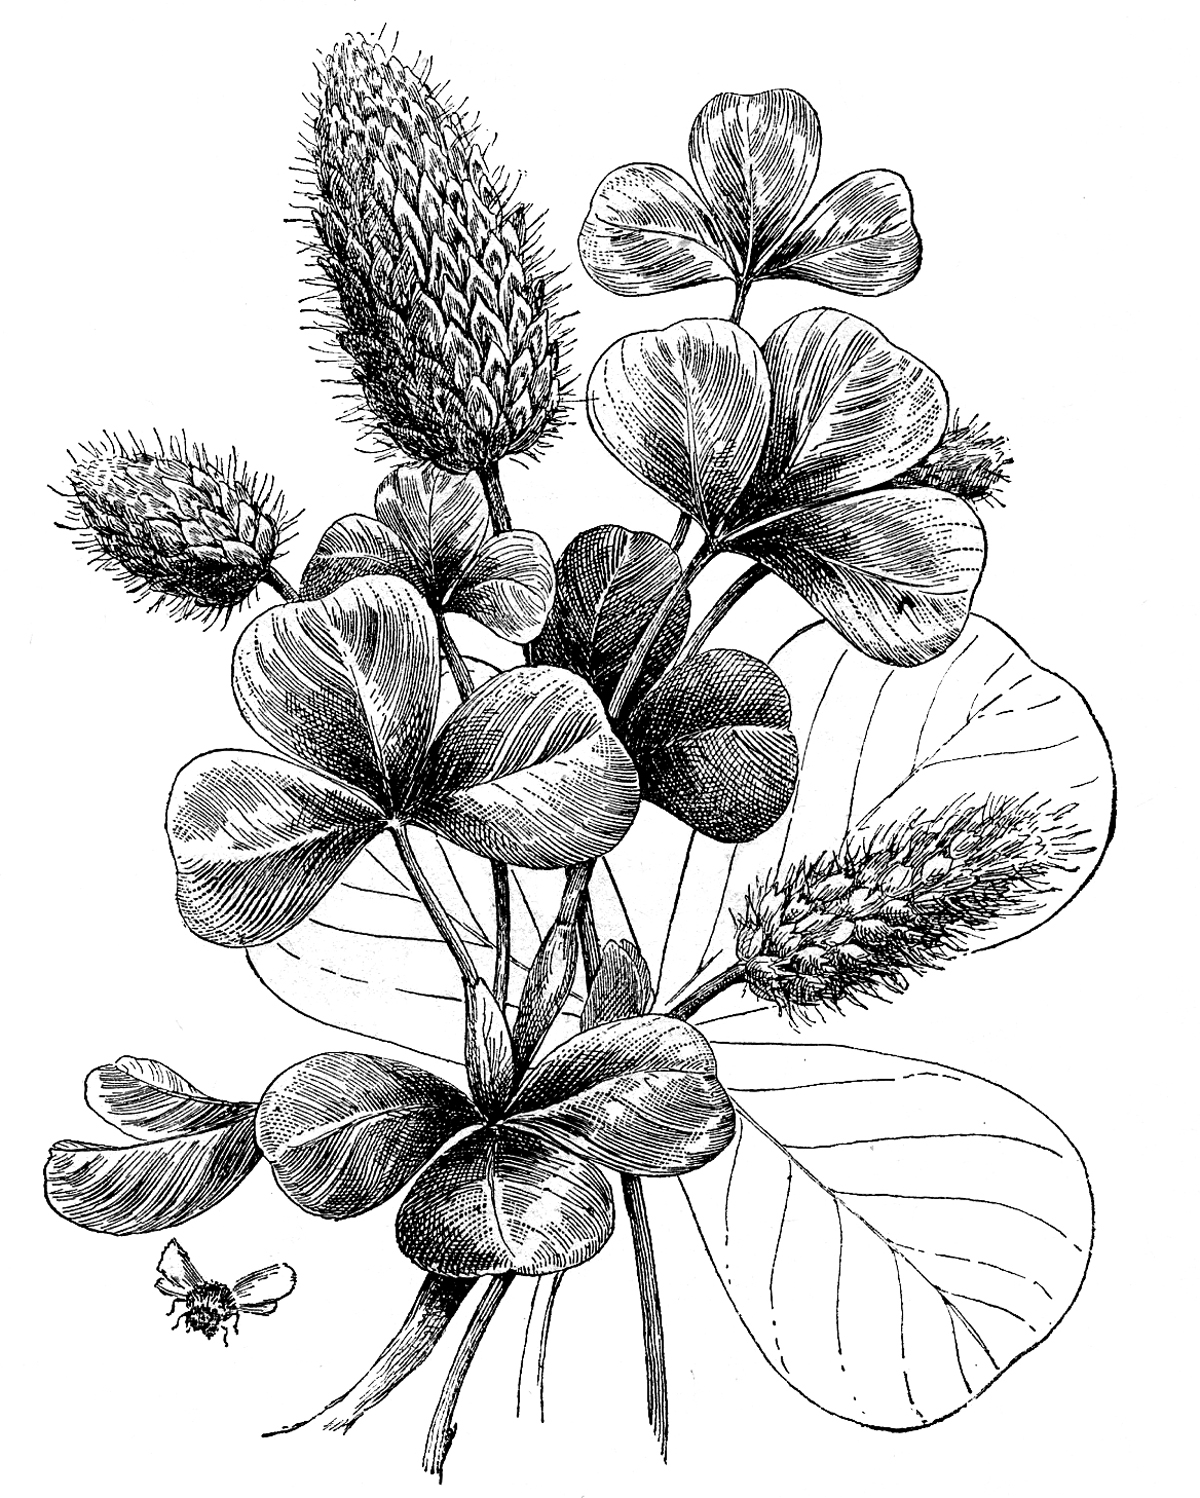 Botanical illustration black and white - photo#12